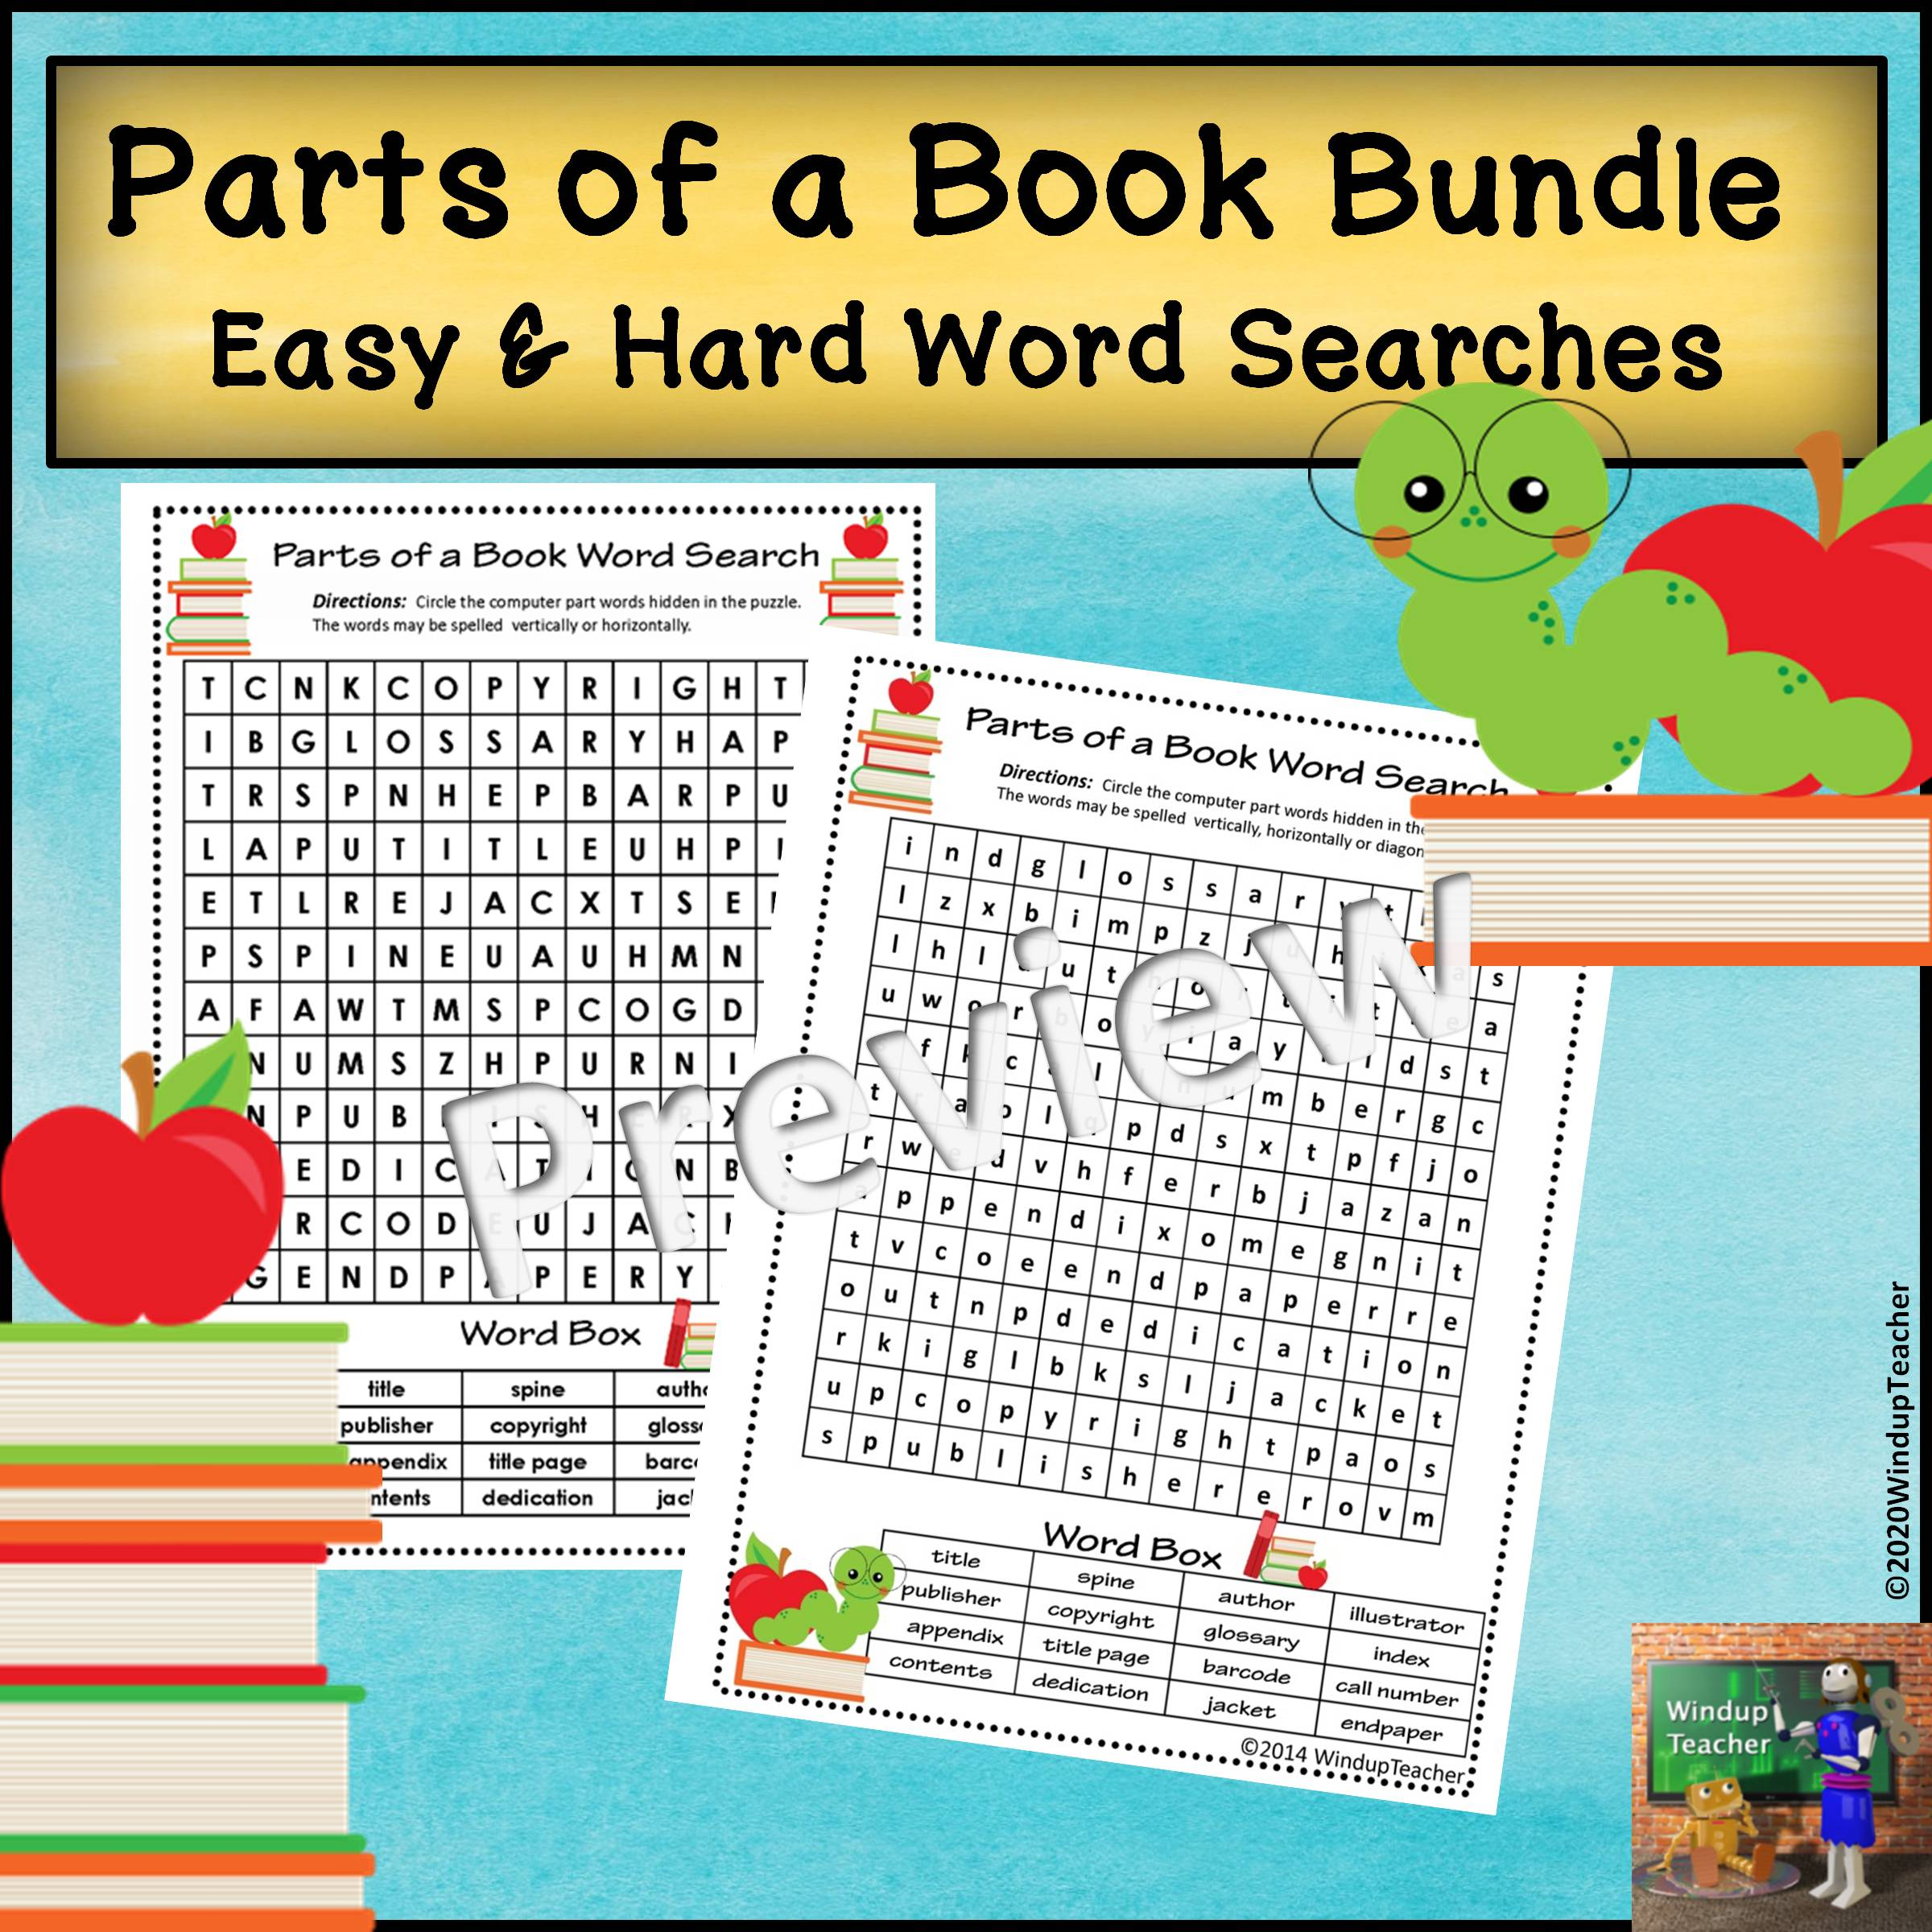 Parts of a Book Word Search BUNDLE   Easy & Hard